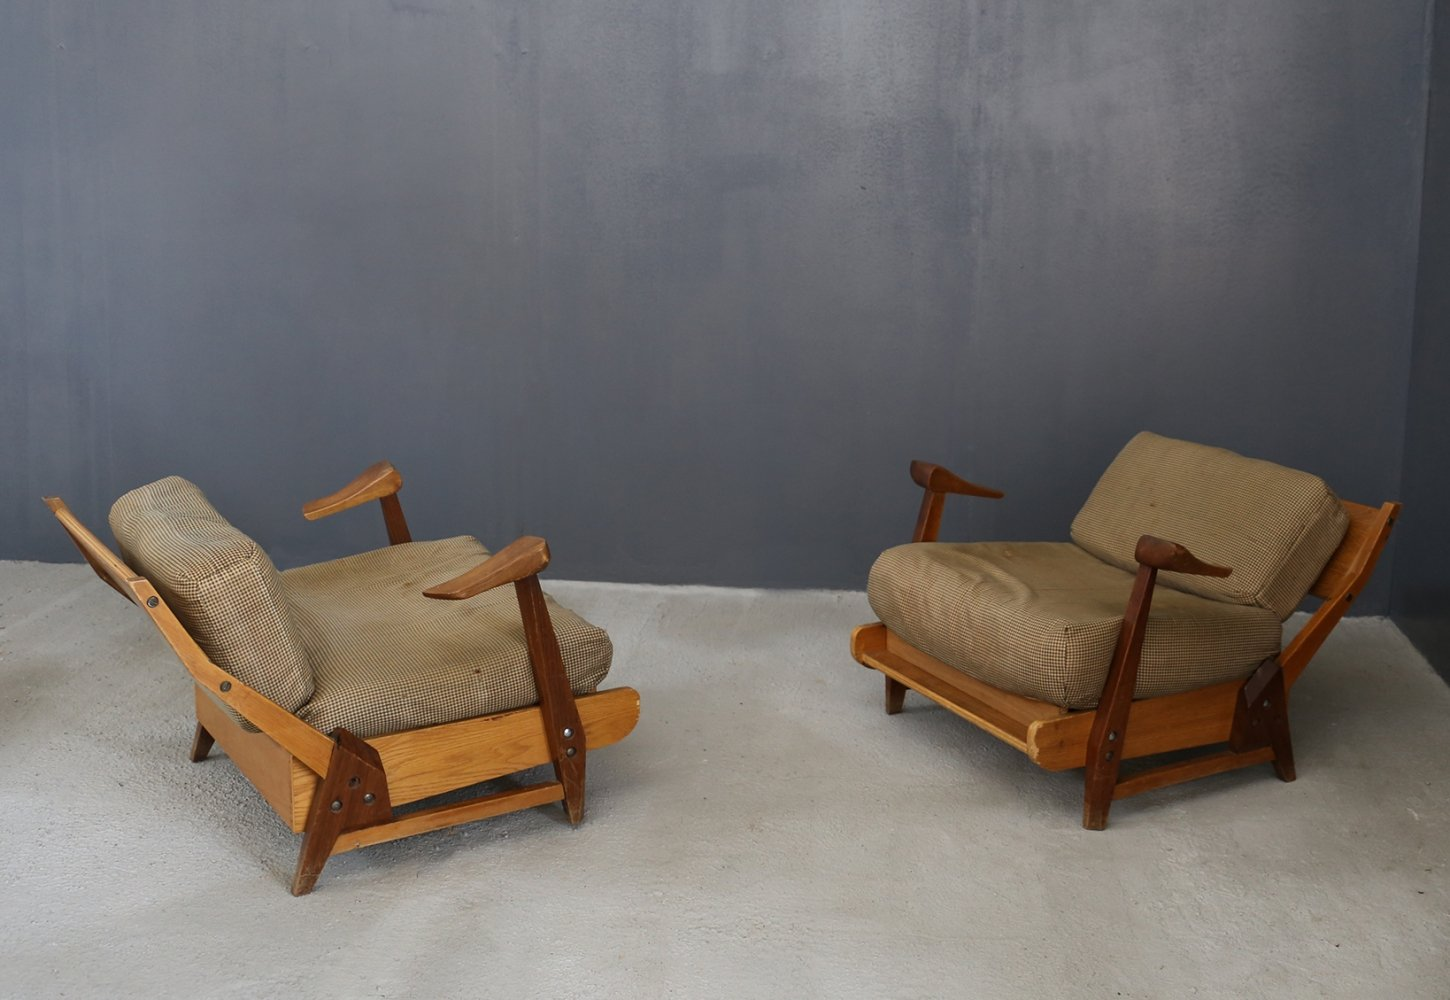 Pair of Brazilian armchairs by Guillerme et Chambron, 1950s